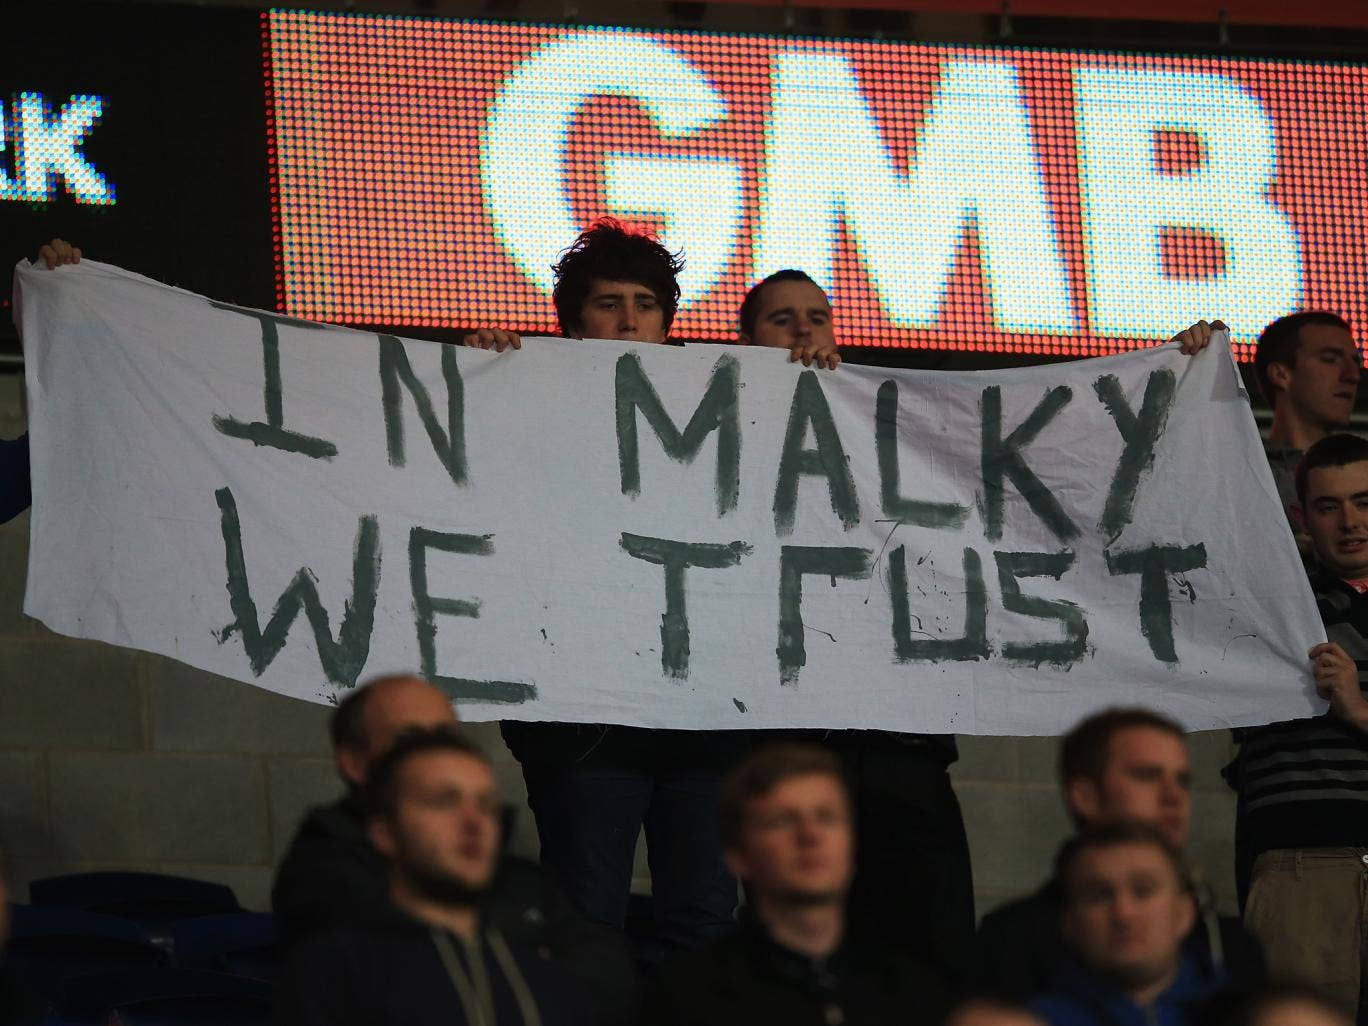 Cardiff City fans show their support for manager Malky Mackay during the Boxing Day defeat to Southampton